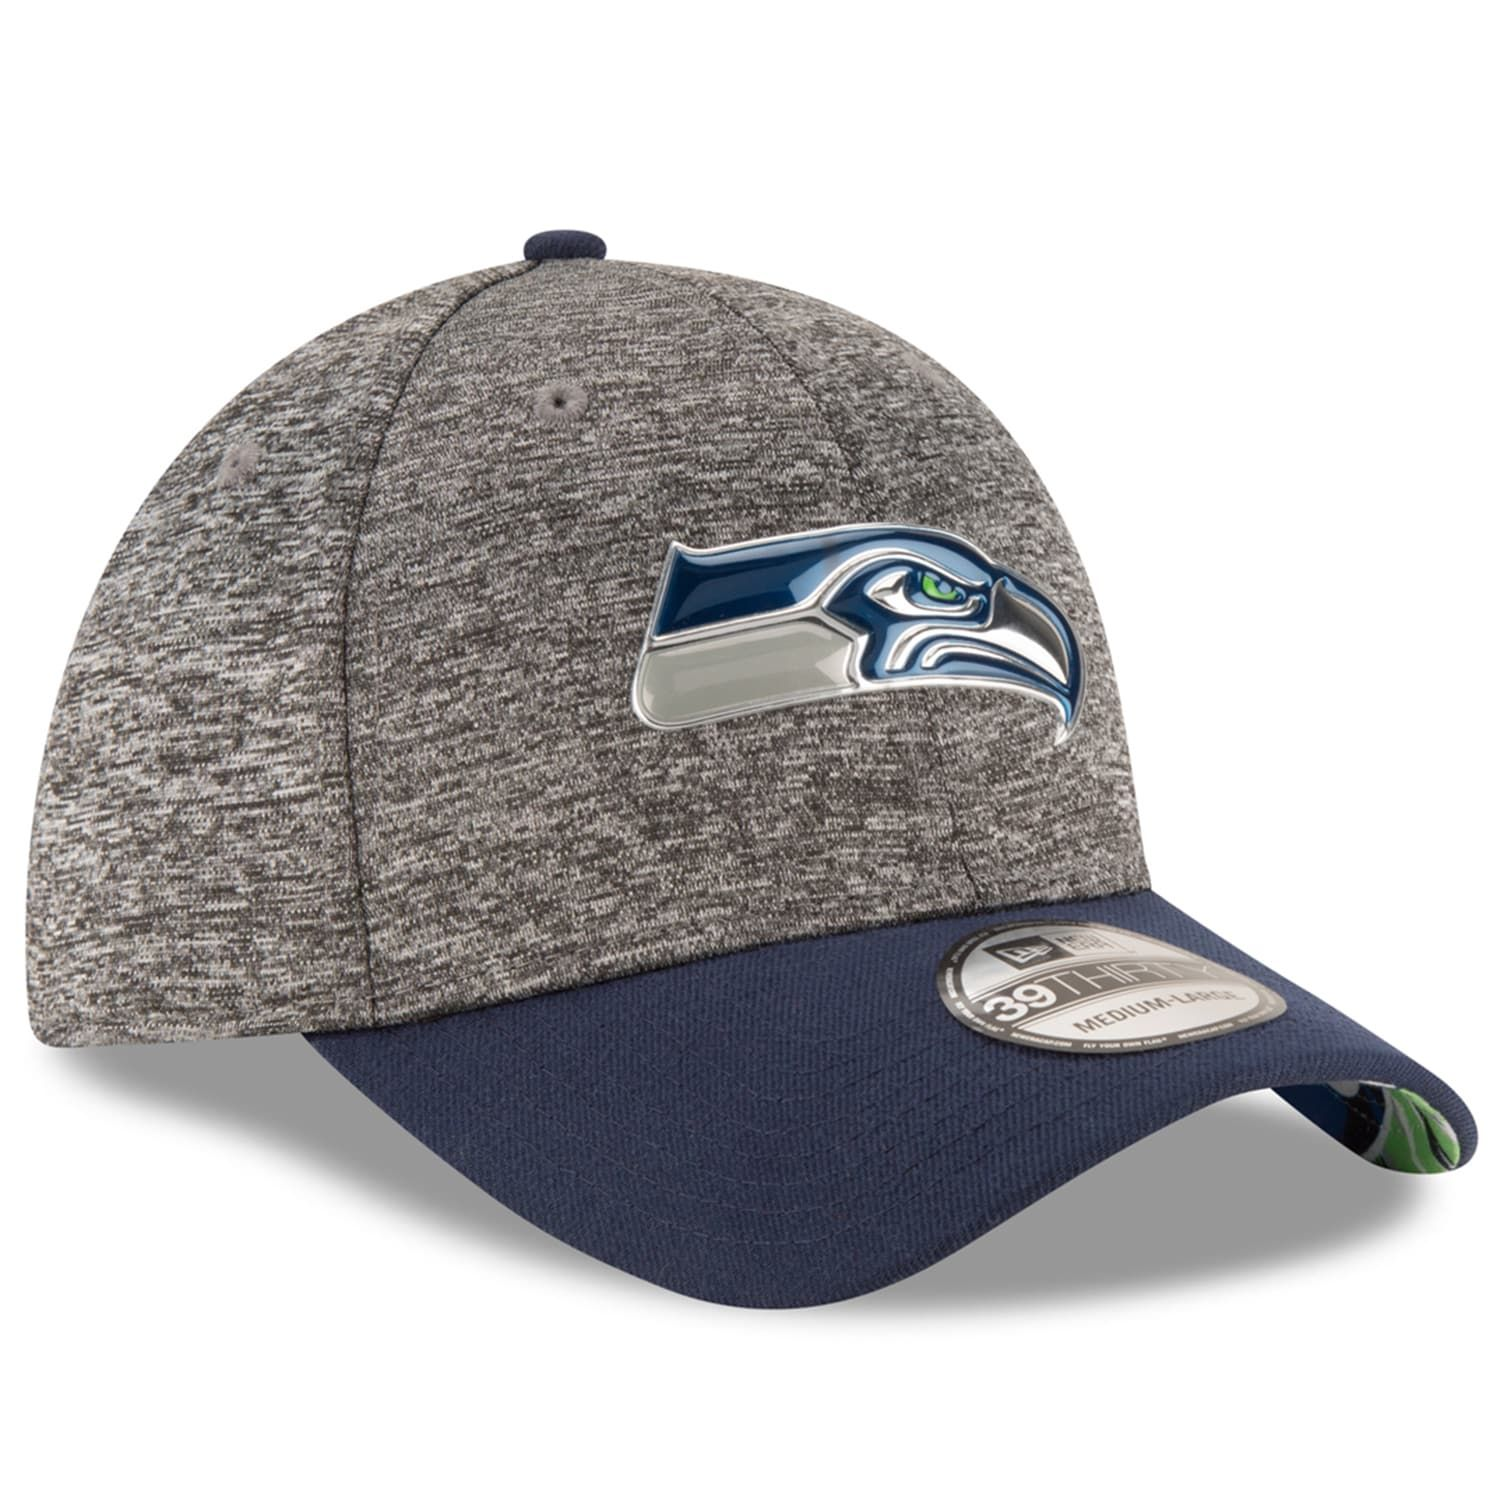 60938230924 Adult New Era Seattle Seahawks 2016 NFL Draft 39THIRTY Flex-Fit Cap   Seahawks